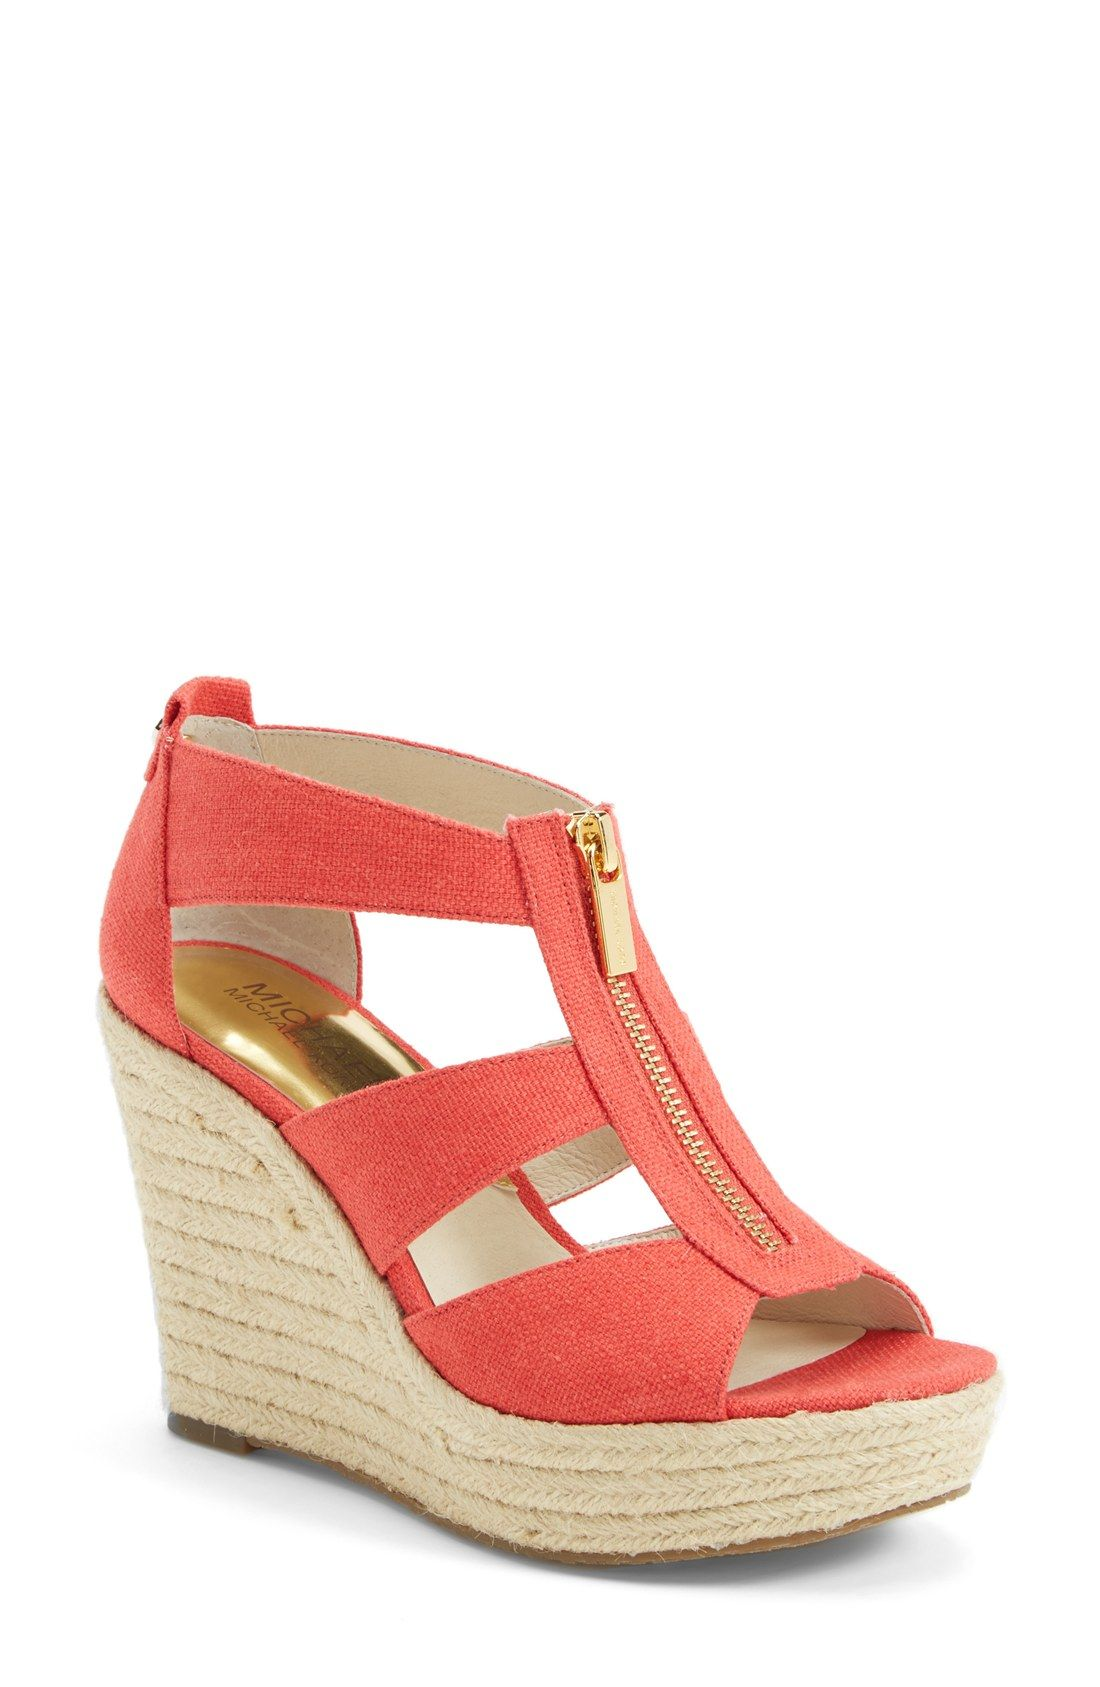 58f52eab6675 Will wear these coral wedge sandals with jeans and a cute tee.